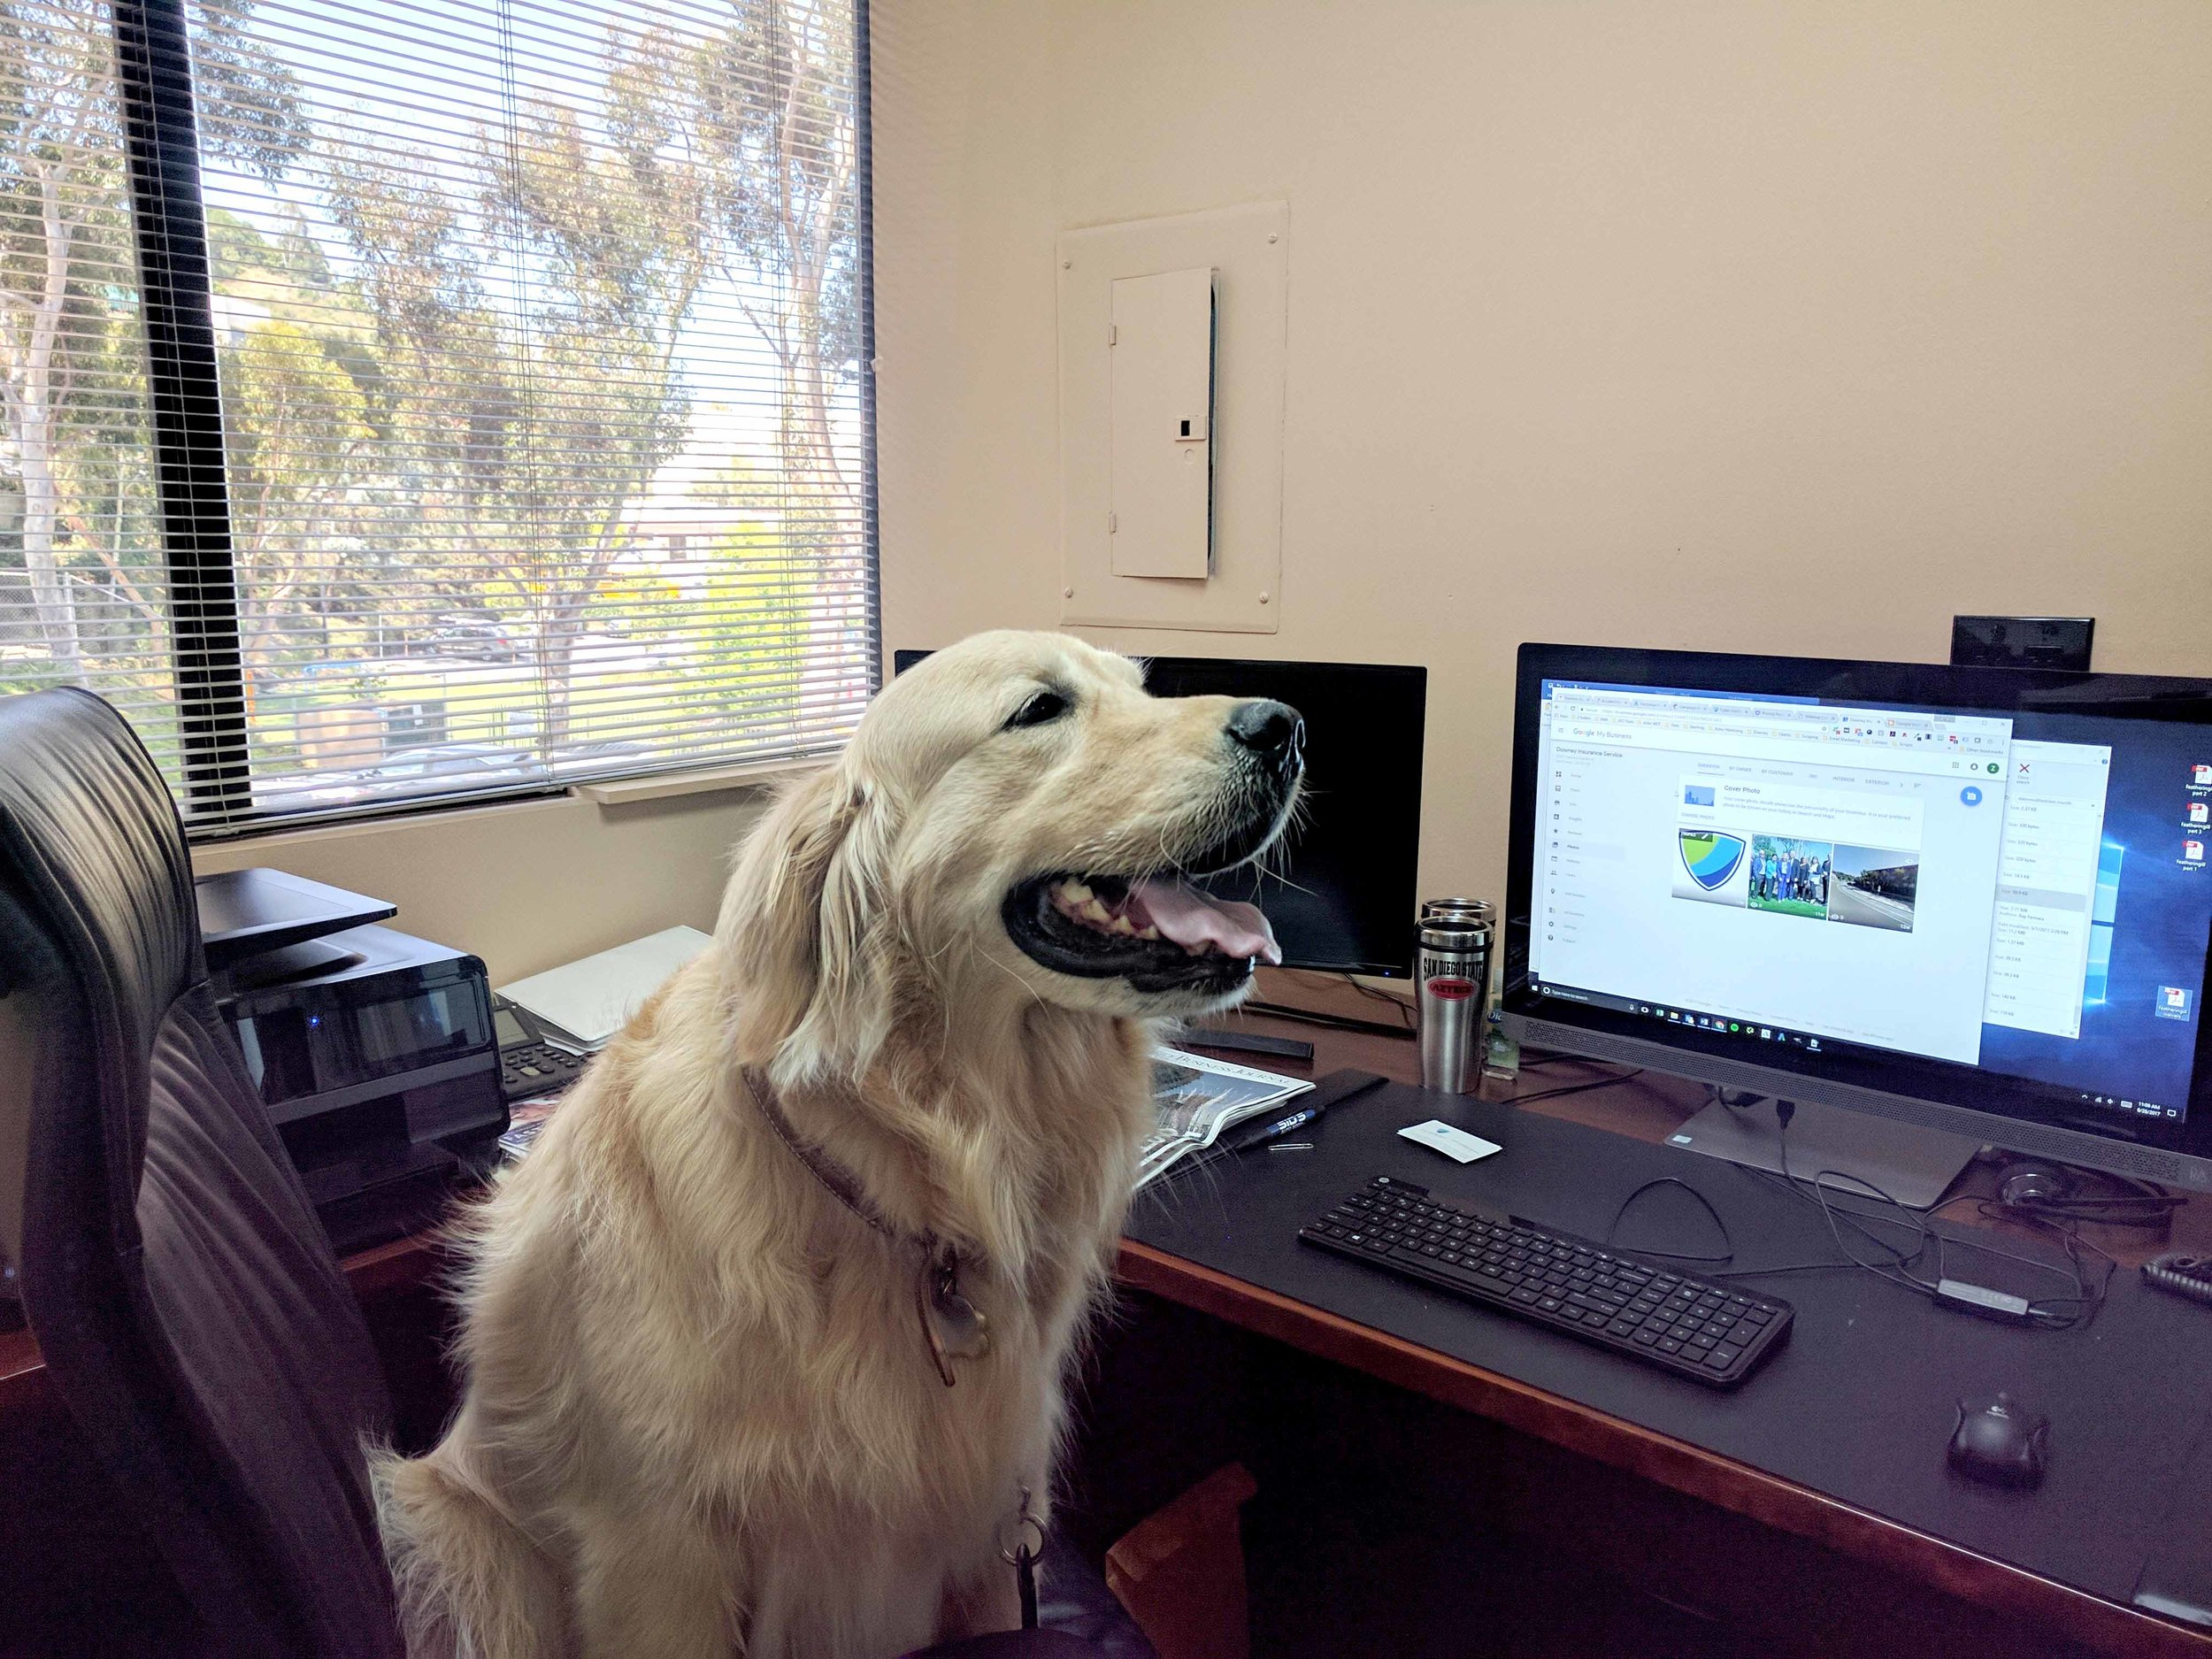 Steve and Marilyn's Dog, Murphy - Working At the Office